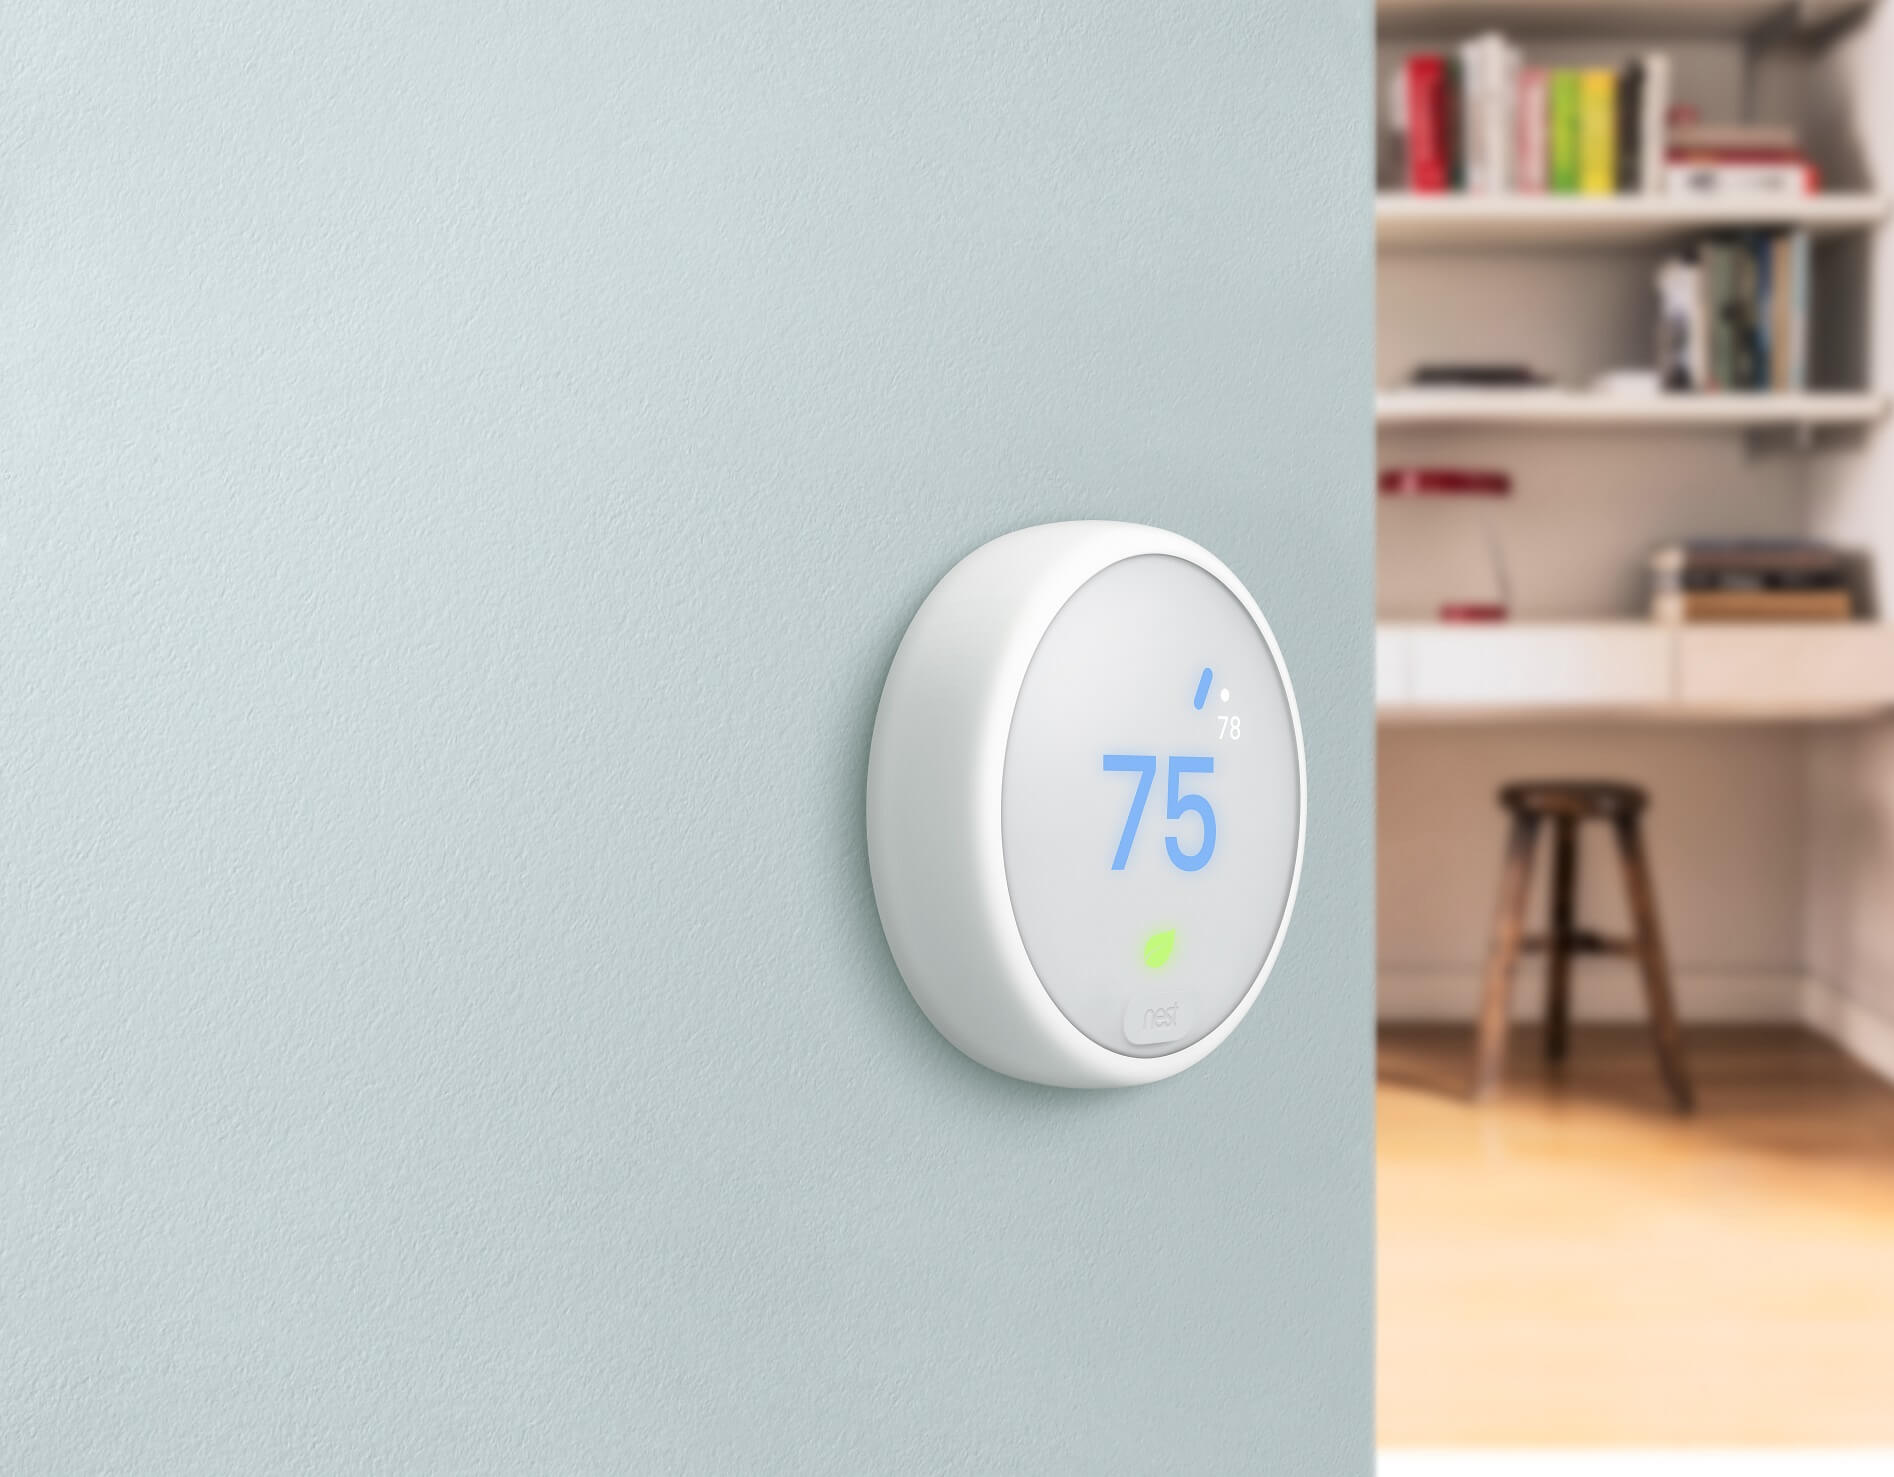 U.S. demand for smart and connected thermostats grows 18% annually: report